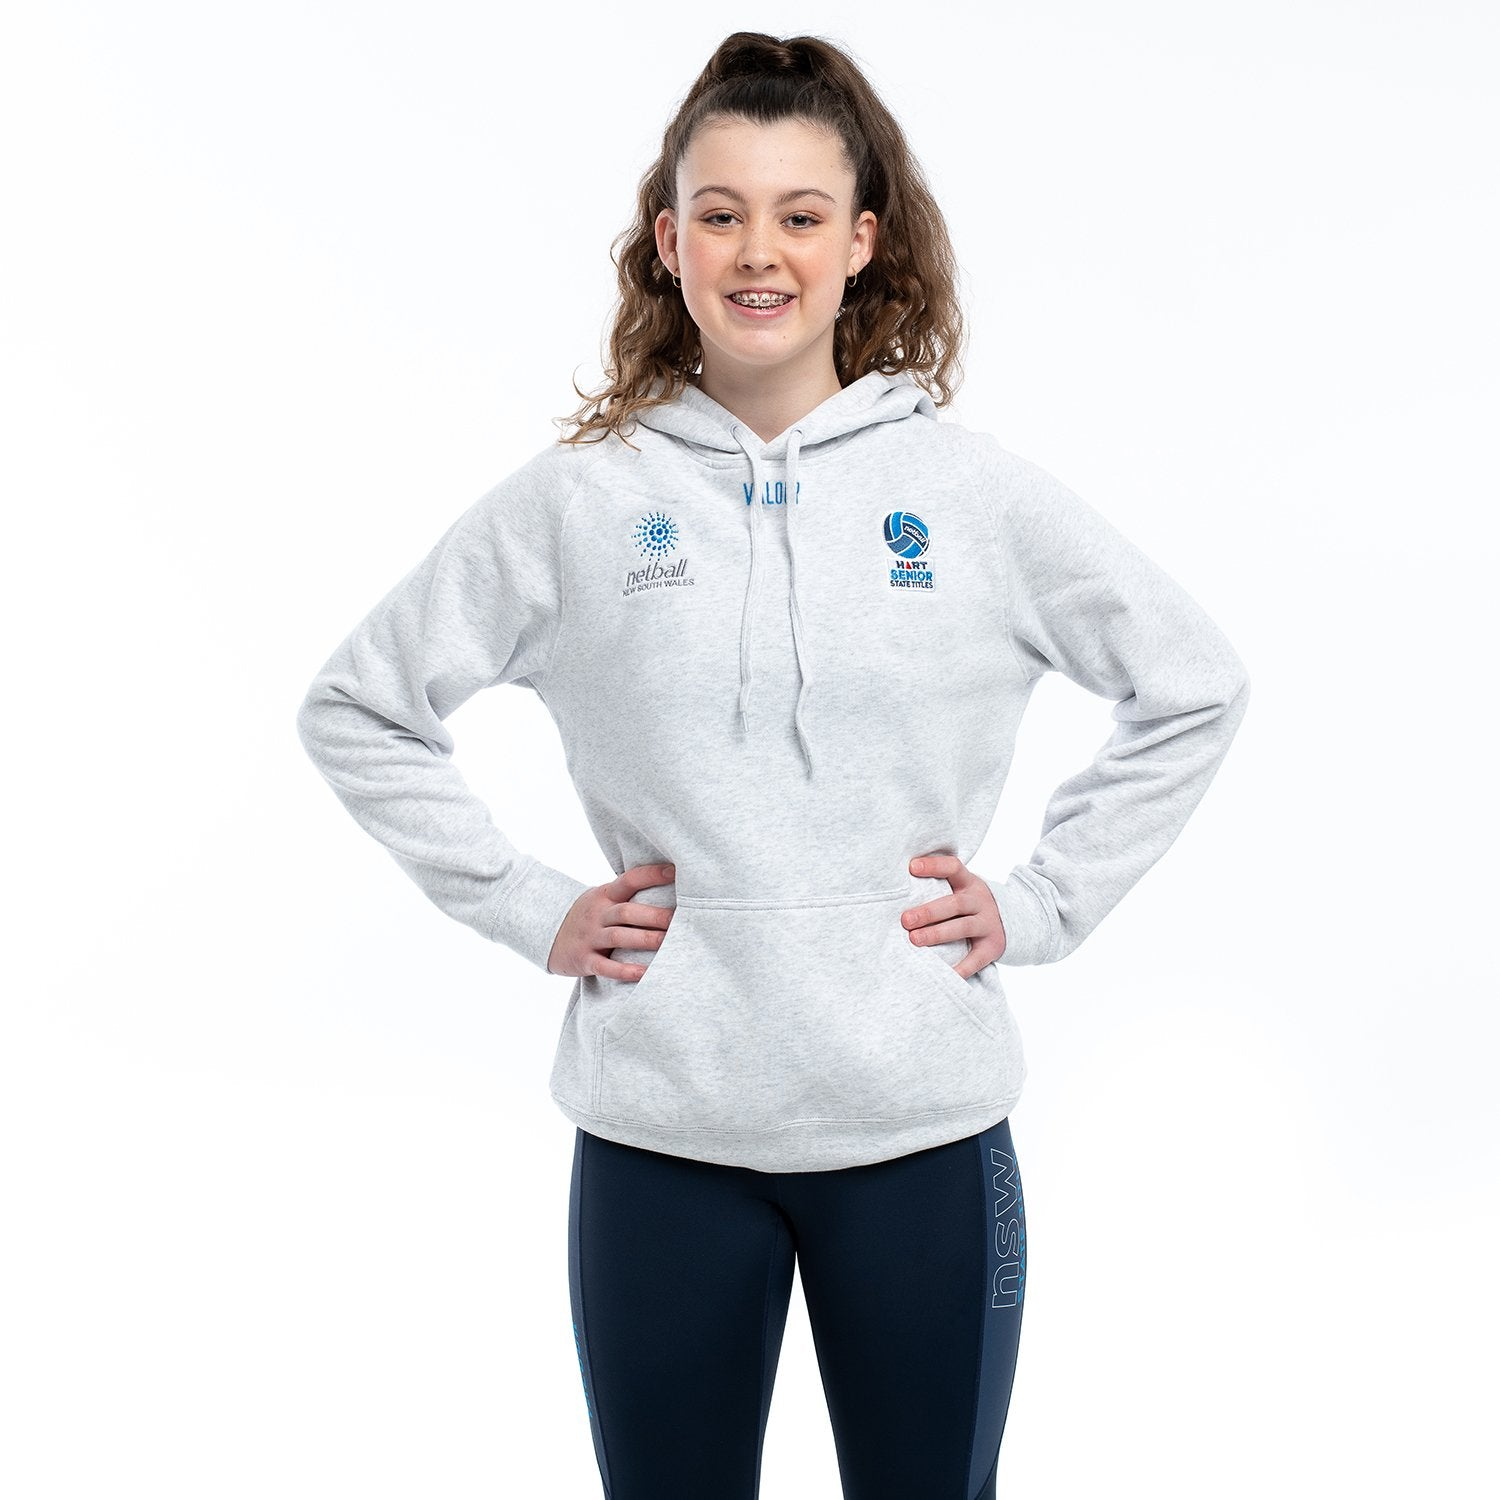 Netball NSW Senior State Titles Hoodie